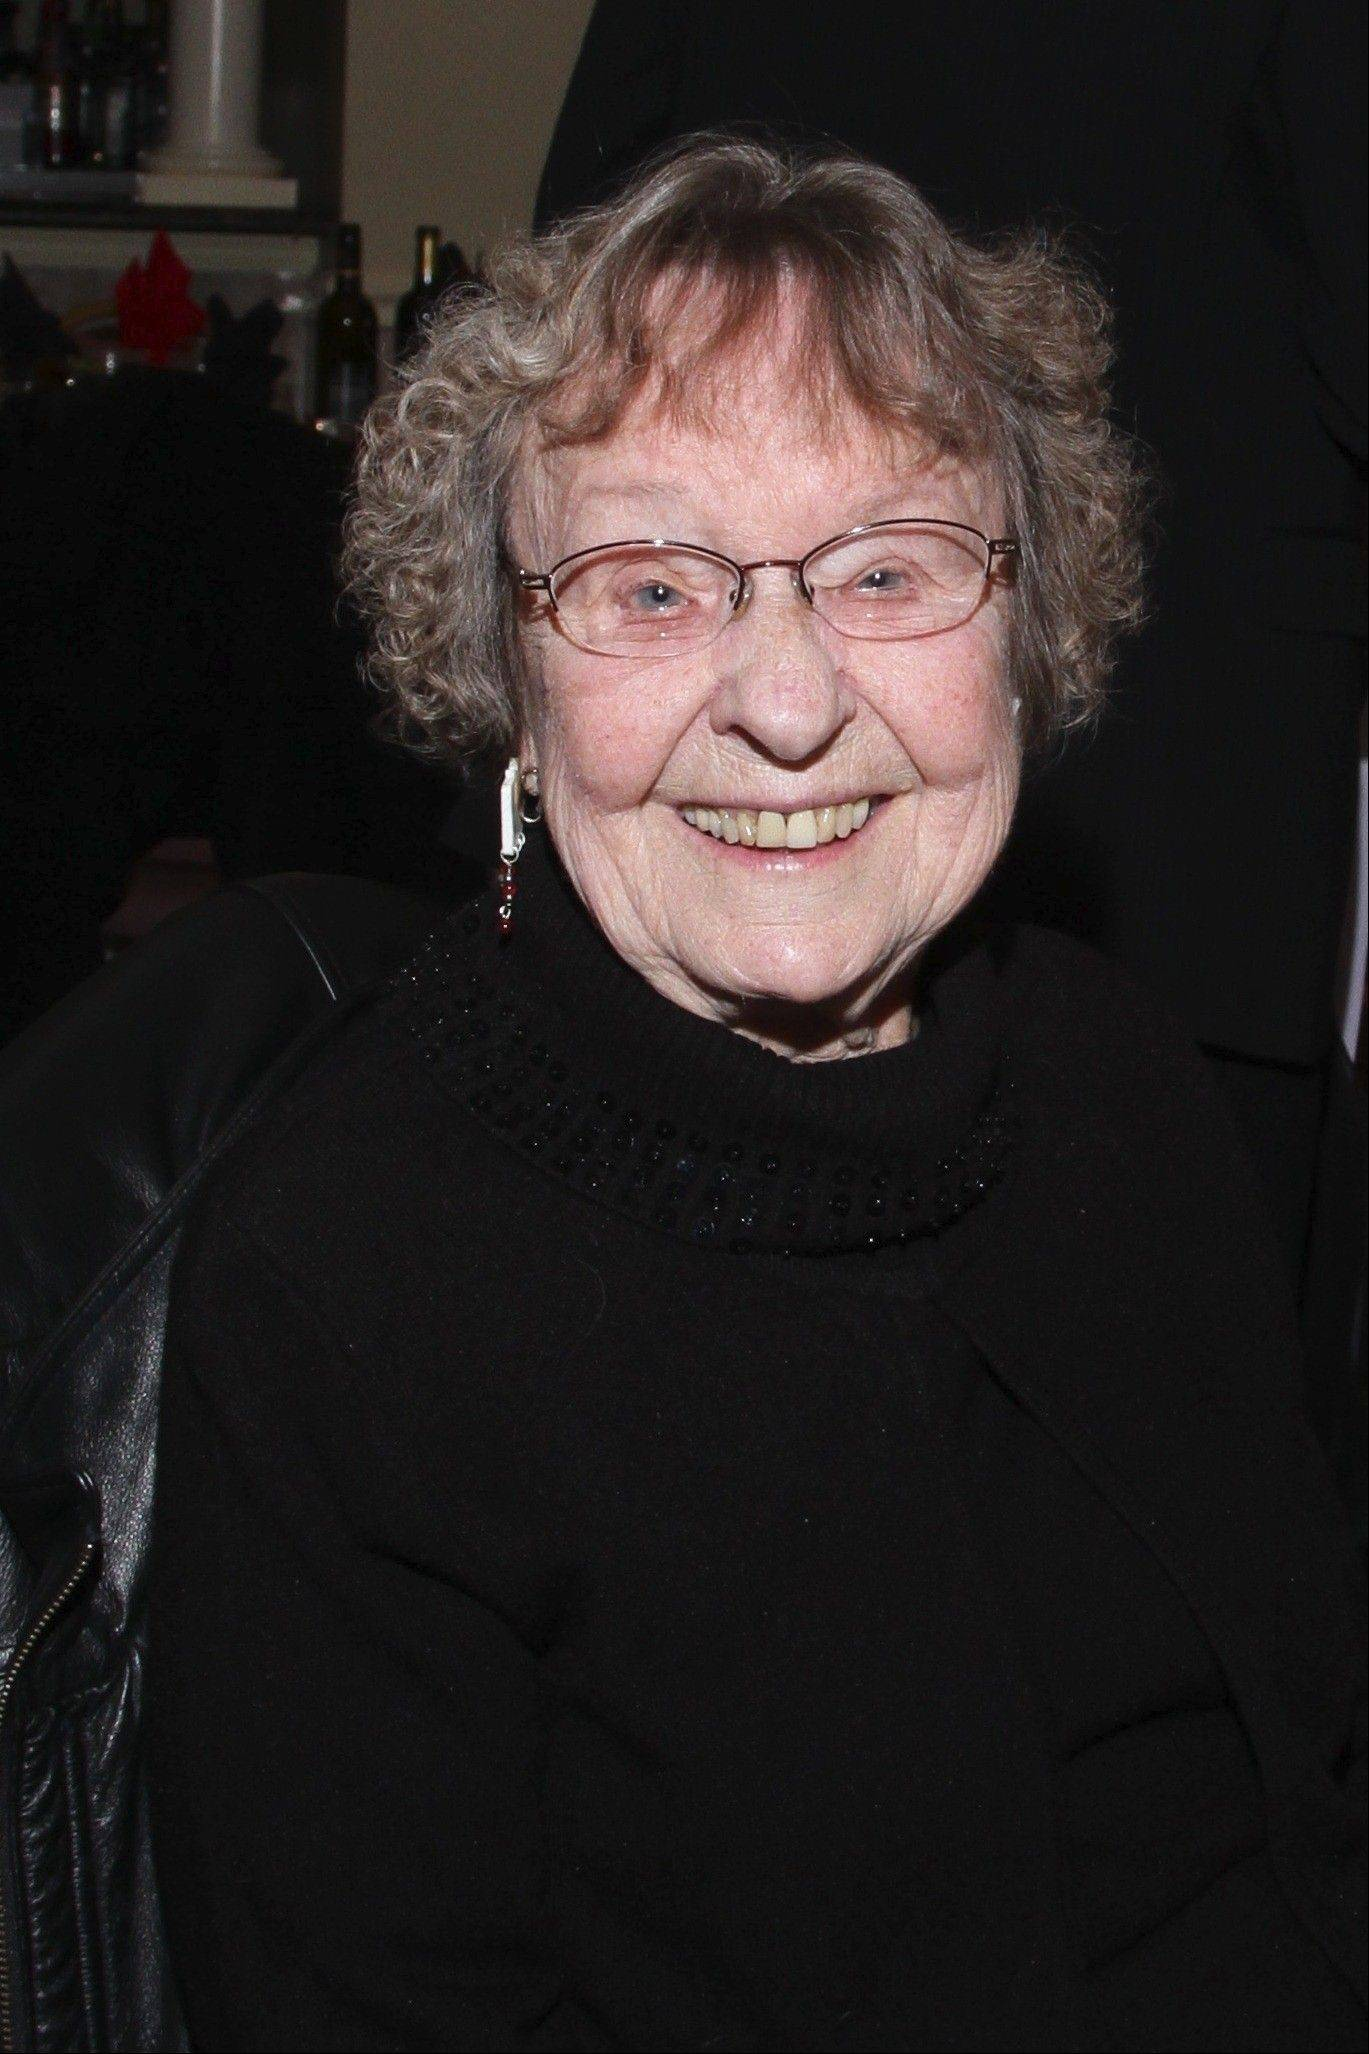 Mary Tarbit was the Guest of Honor at the Palatine Township Senior Citizens Council's 40th annual gala.